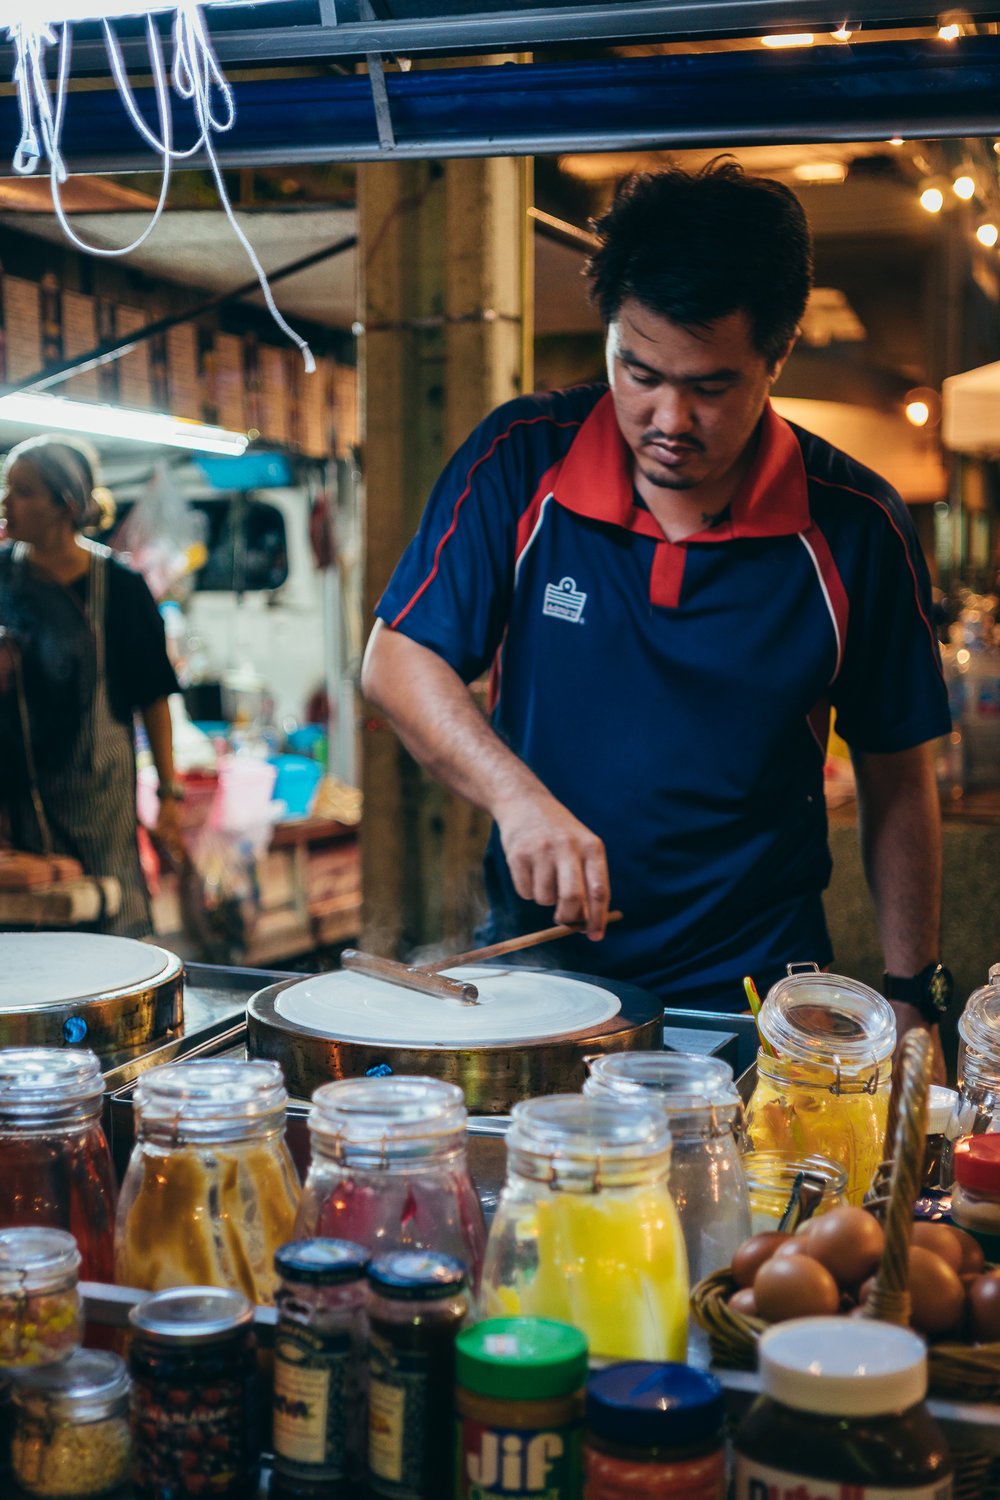 Jay makes the best Crispy Crepes in Bangkok! You can find his stand at Bangkok Bazaar, close to the Saphan Taksin BTS station